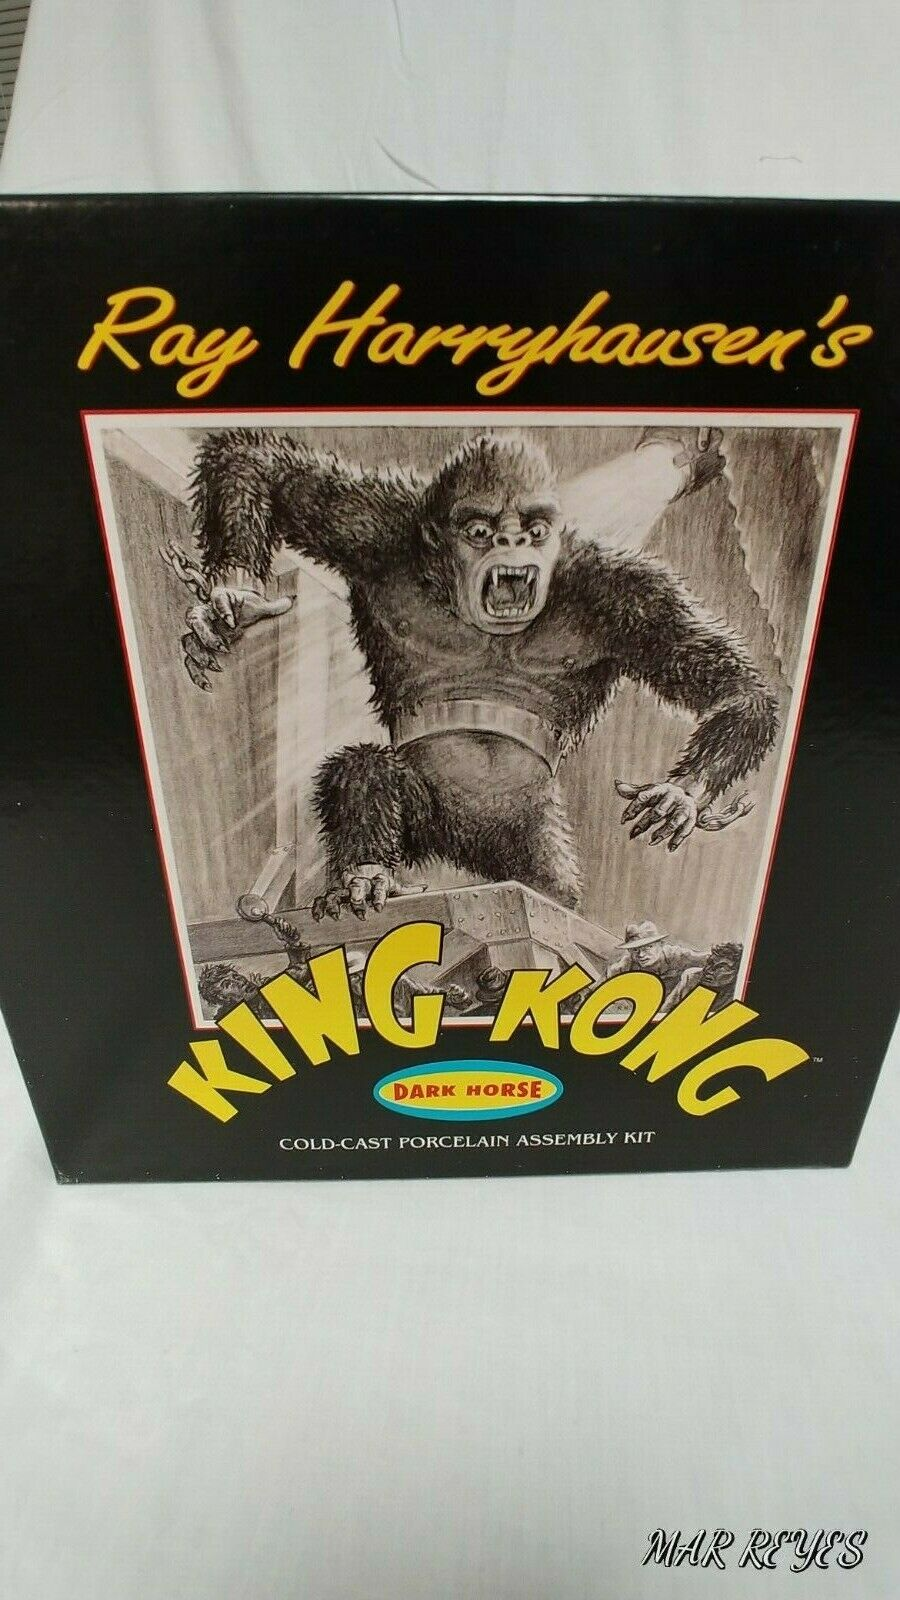 KING KONG  1 48 scale Cold-cast porcelain assembly kit by DARK HORSE 125